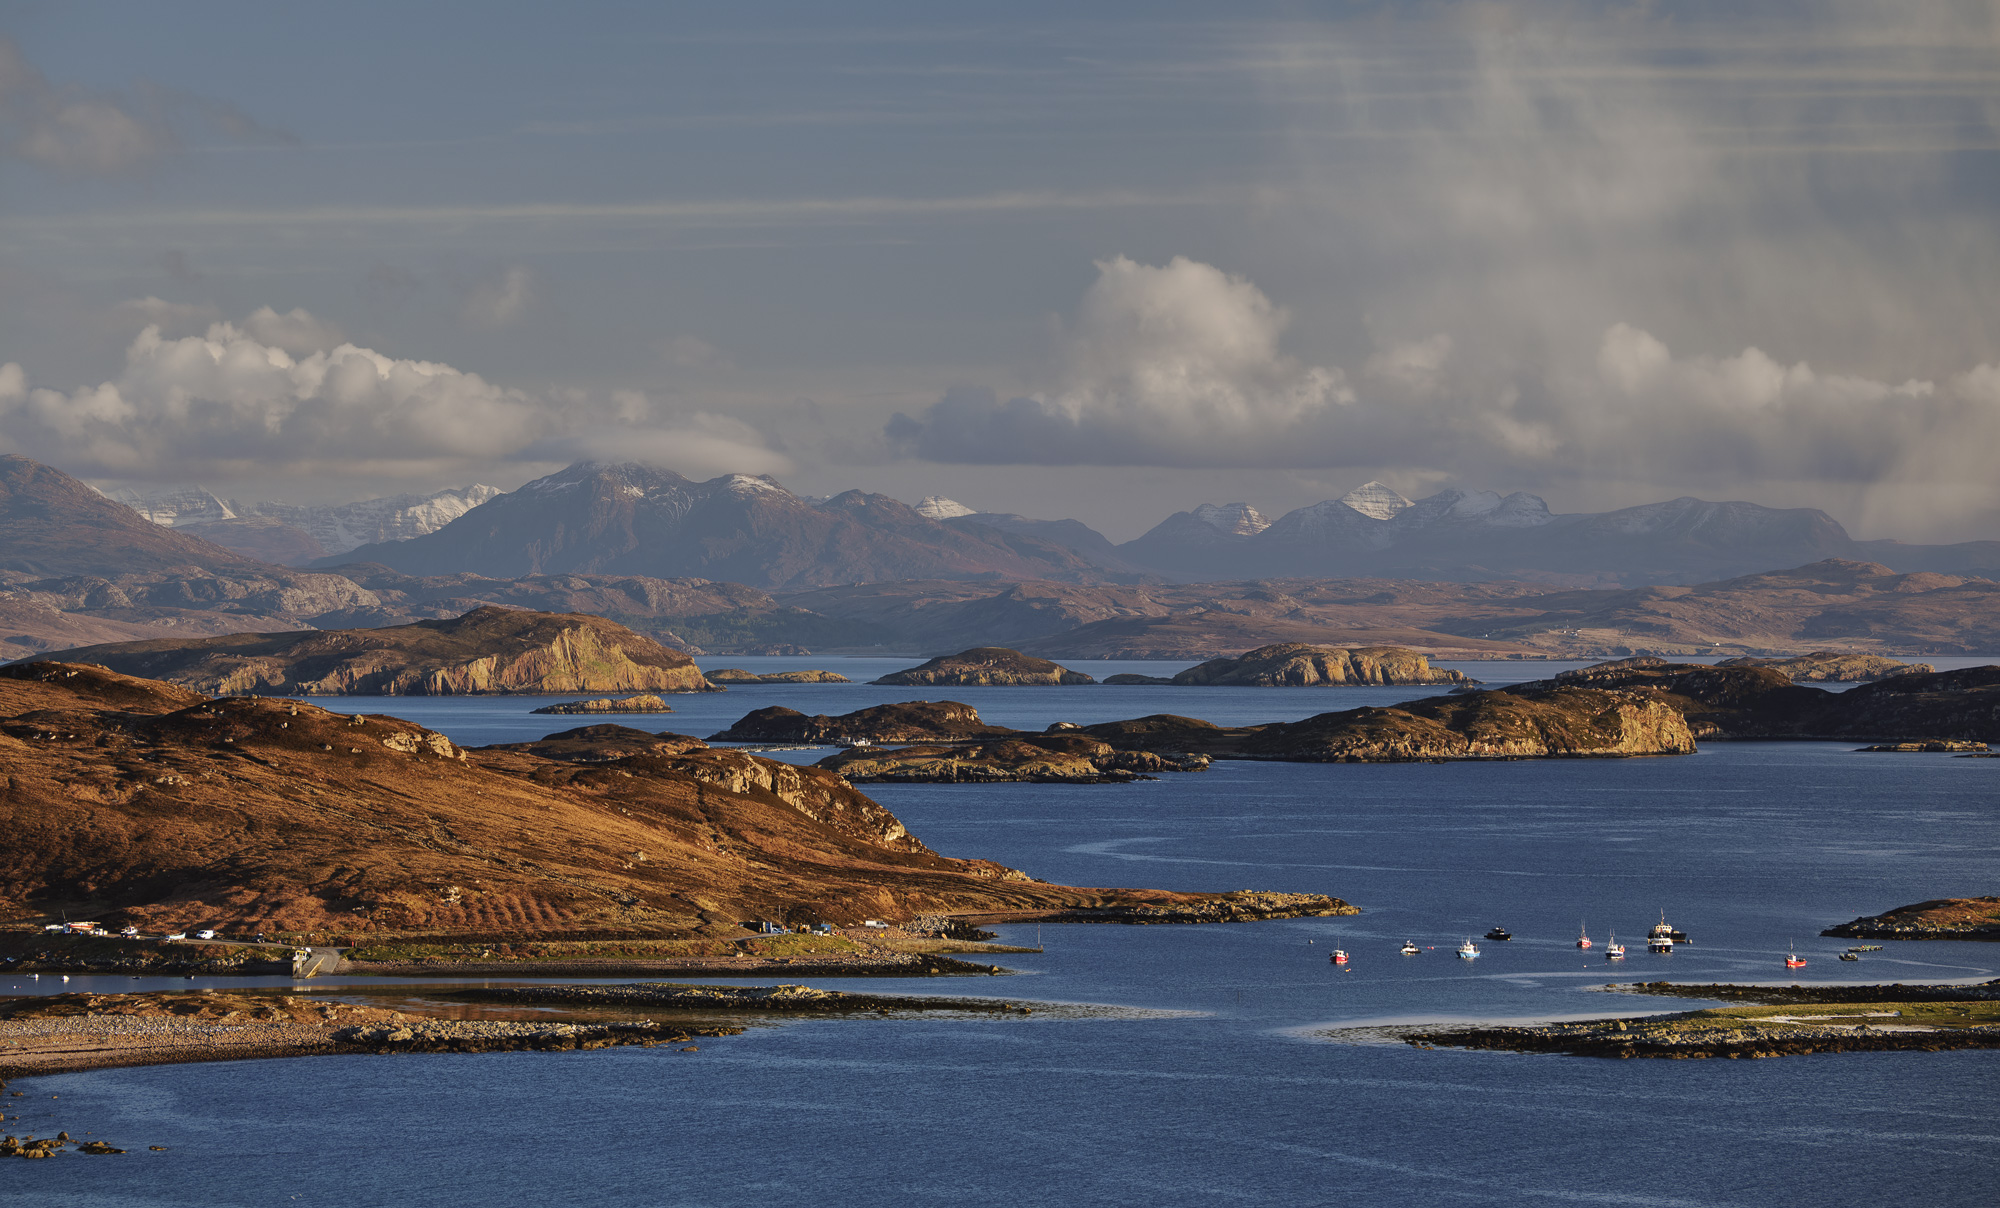 The Summer Isles a collection of low lying islands captured in golden late afternoon Spring sunlight from the high viewpoint near Reiff.